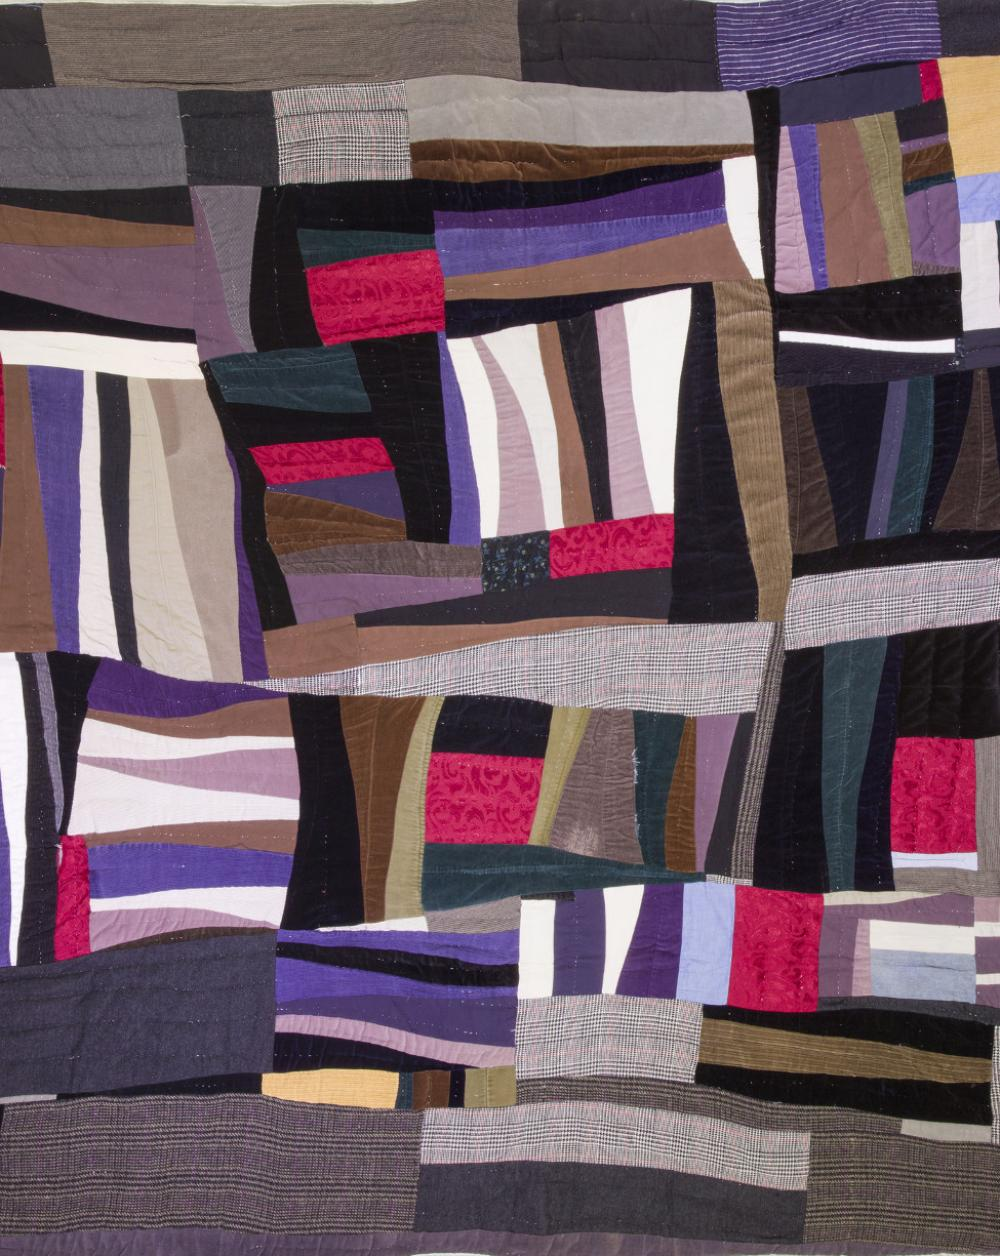 Mary Lee Bendolph (American, 1935- ), Husband Suit Clothes (Housetop Variation) (detail), 1990